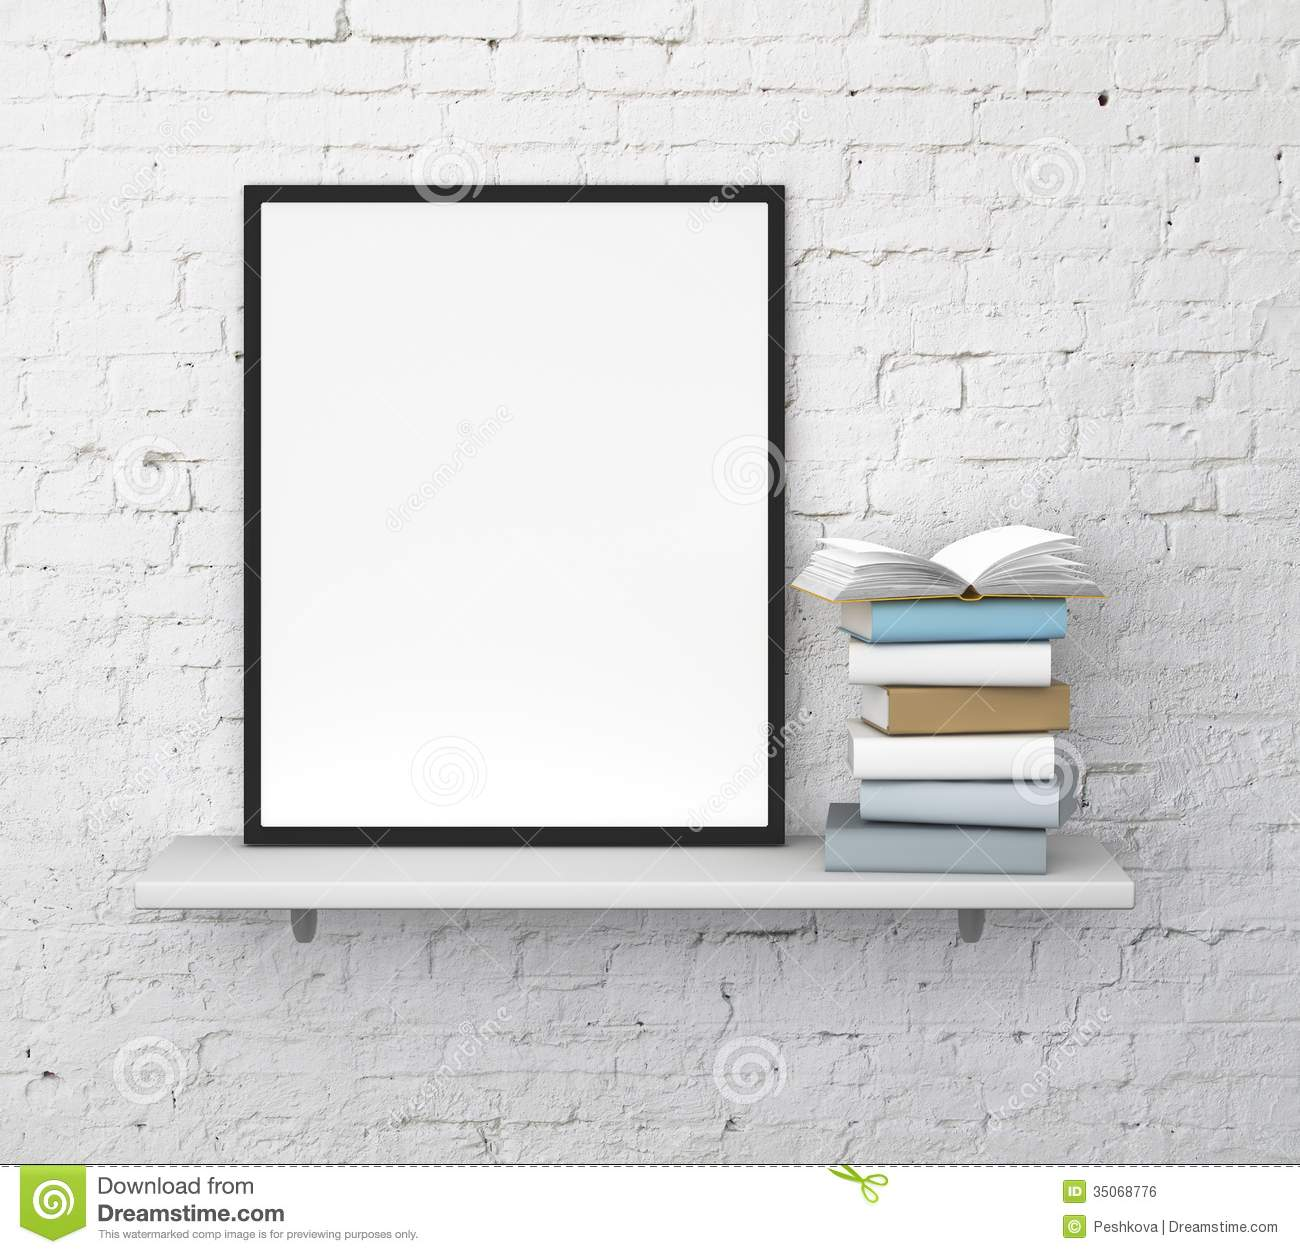 Shelf With Frame Royalty Free Stock Image - Image: 35068776